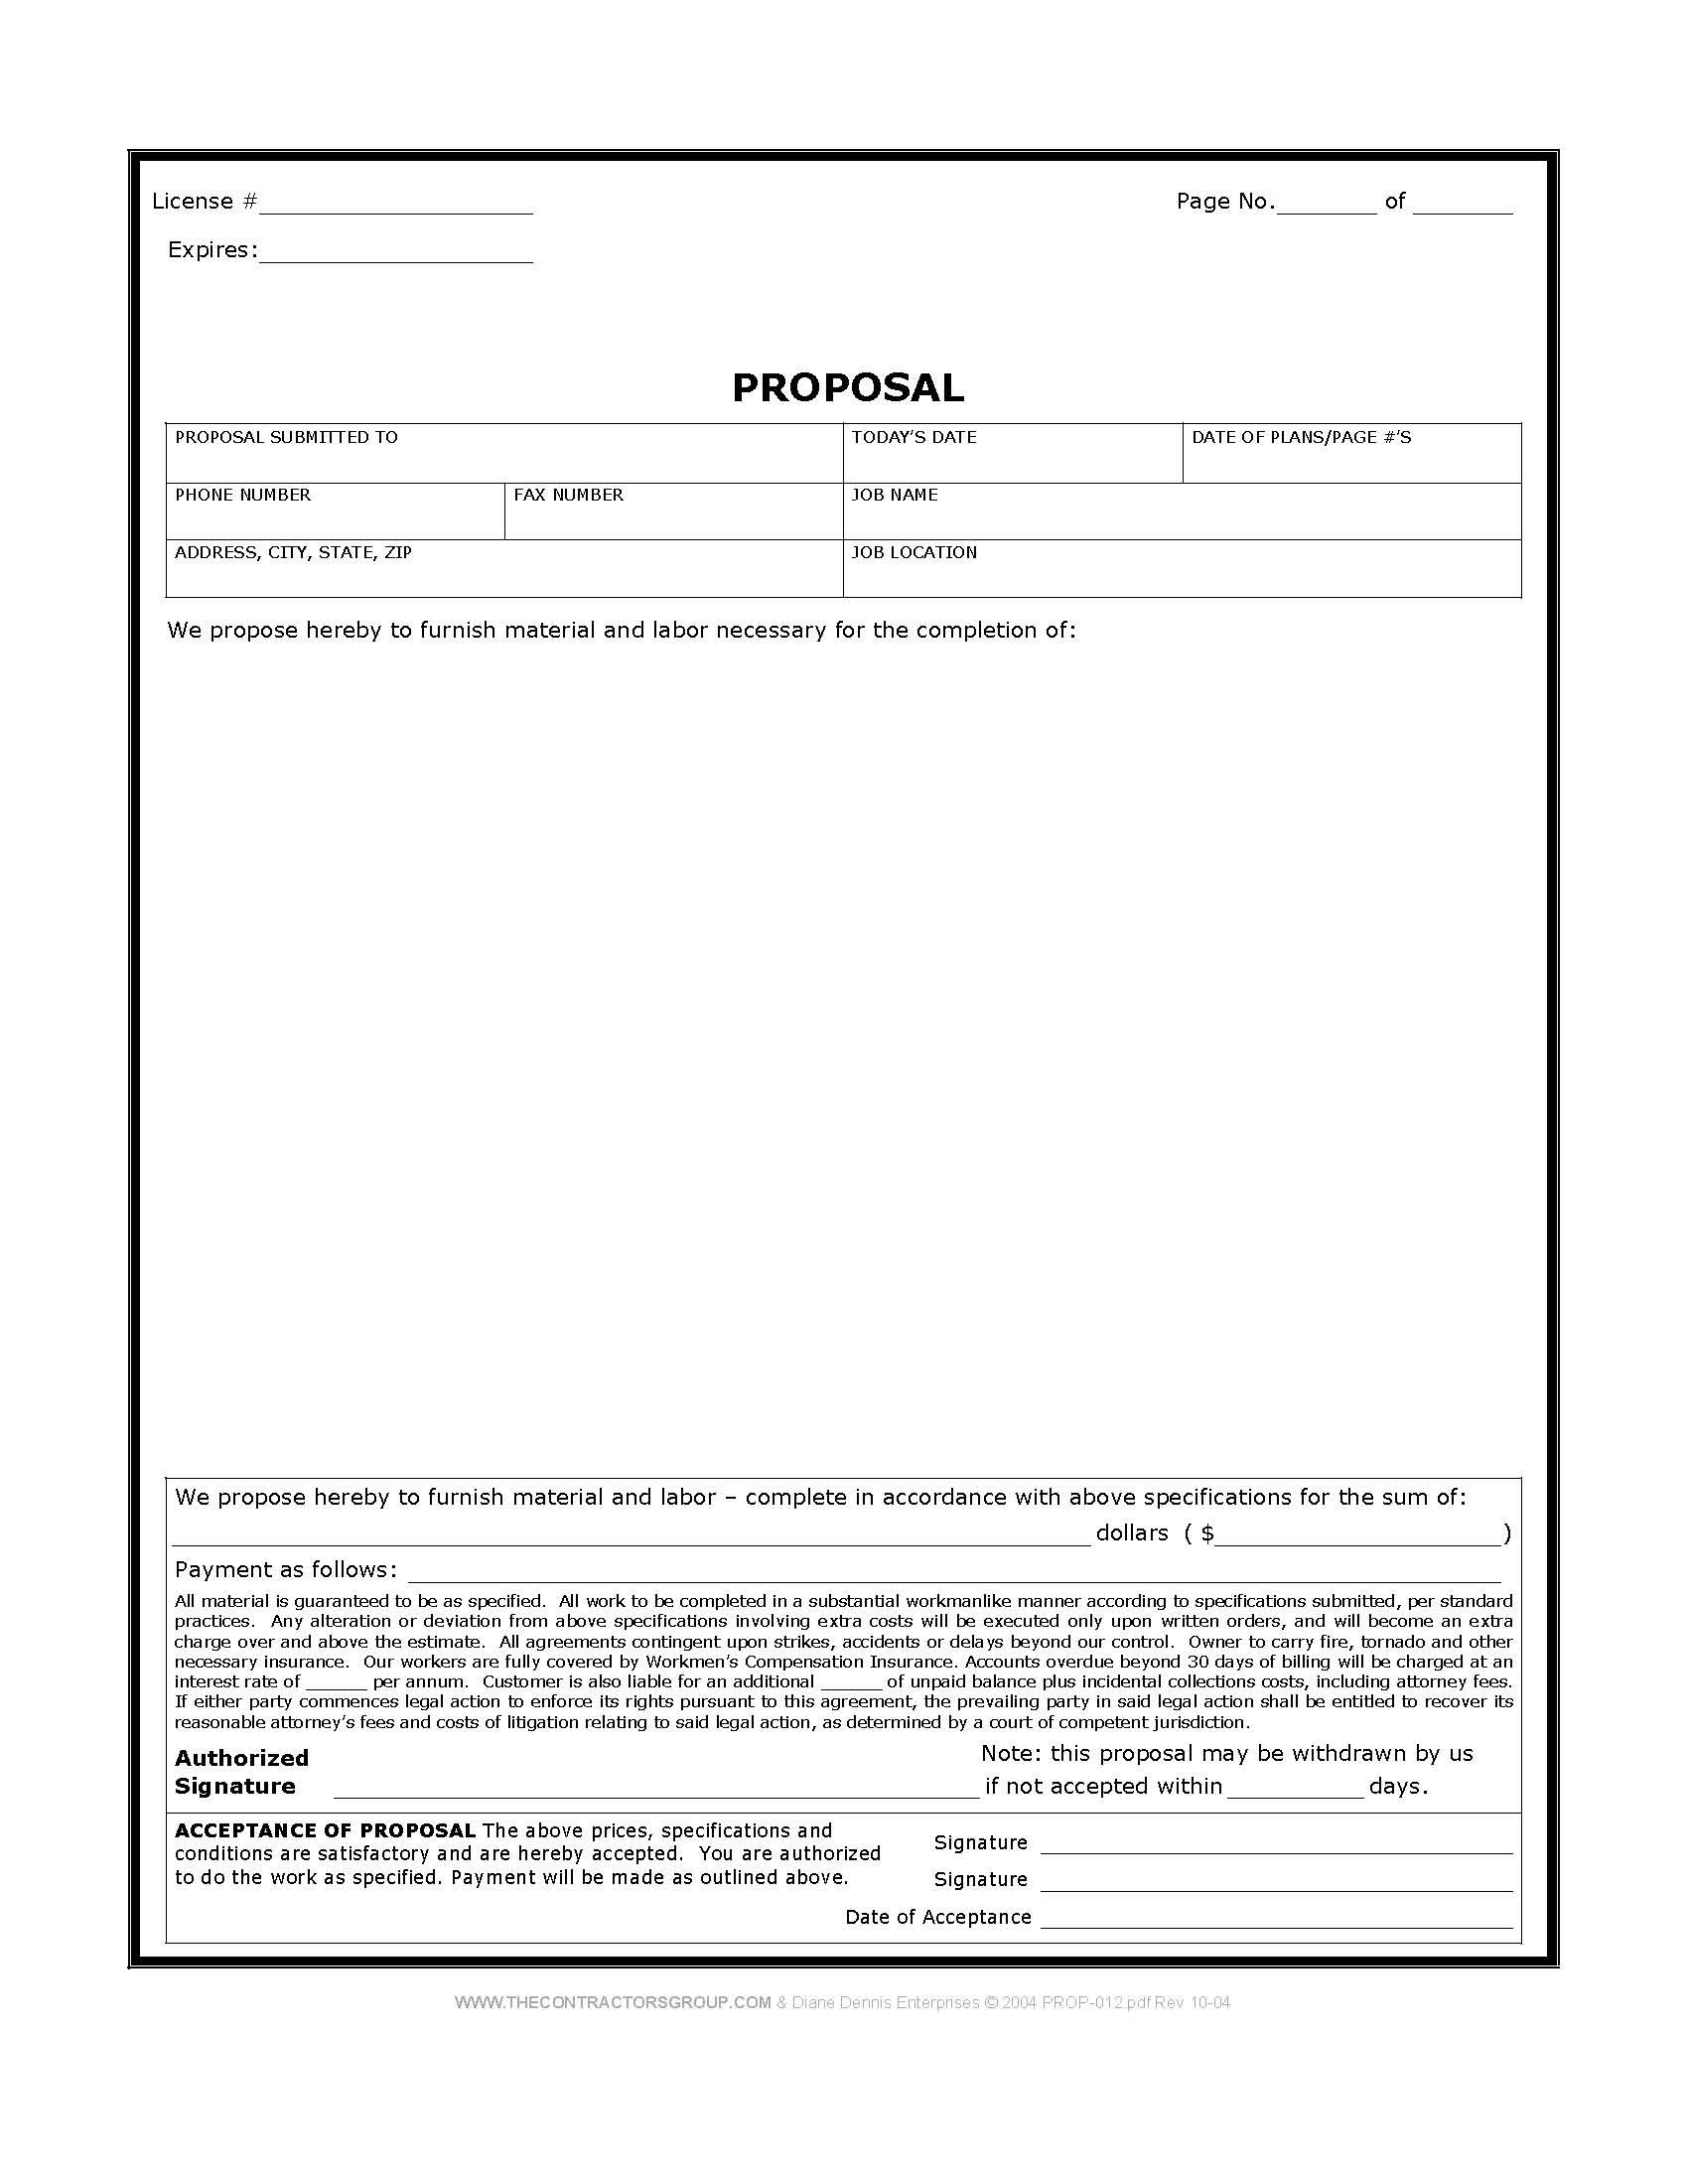 Contract Proposal Template Free Free Print Contractor Proposal Forms  Construction Proposal Form .